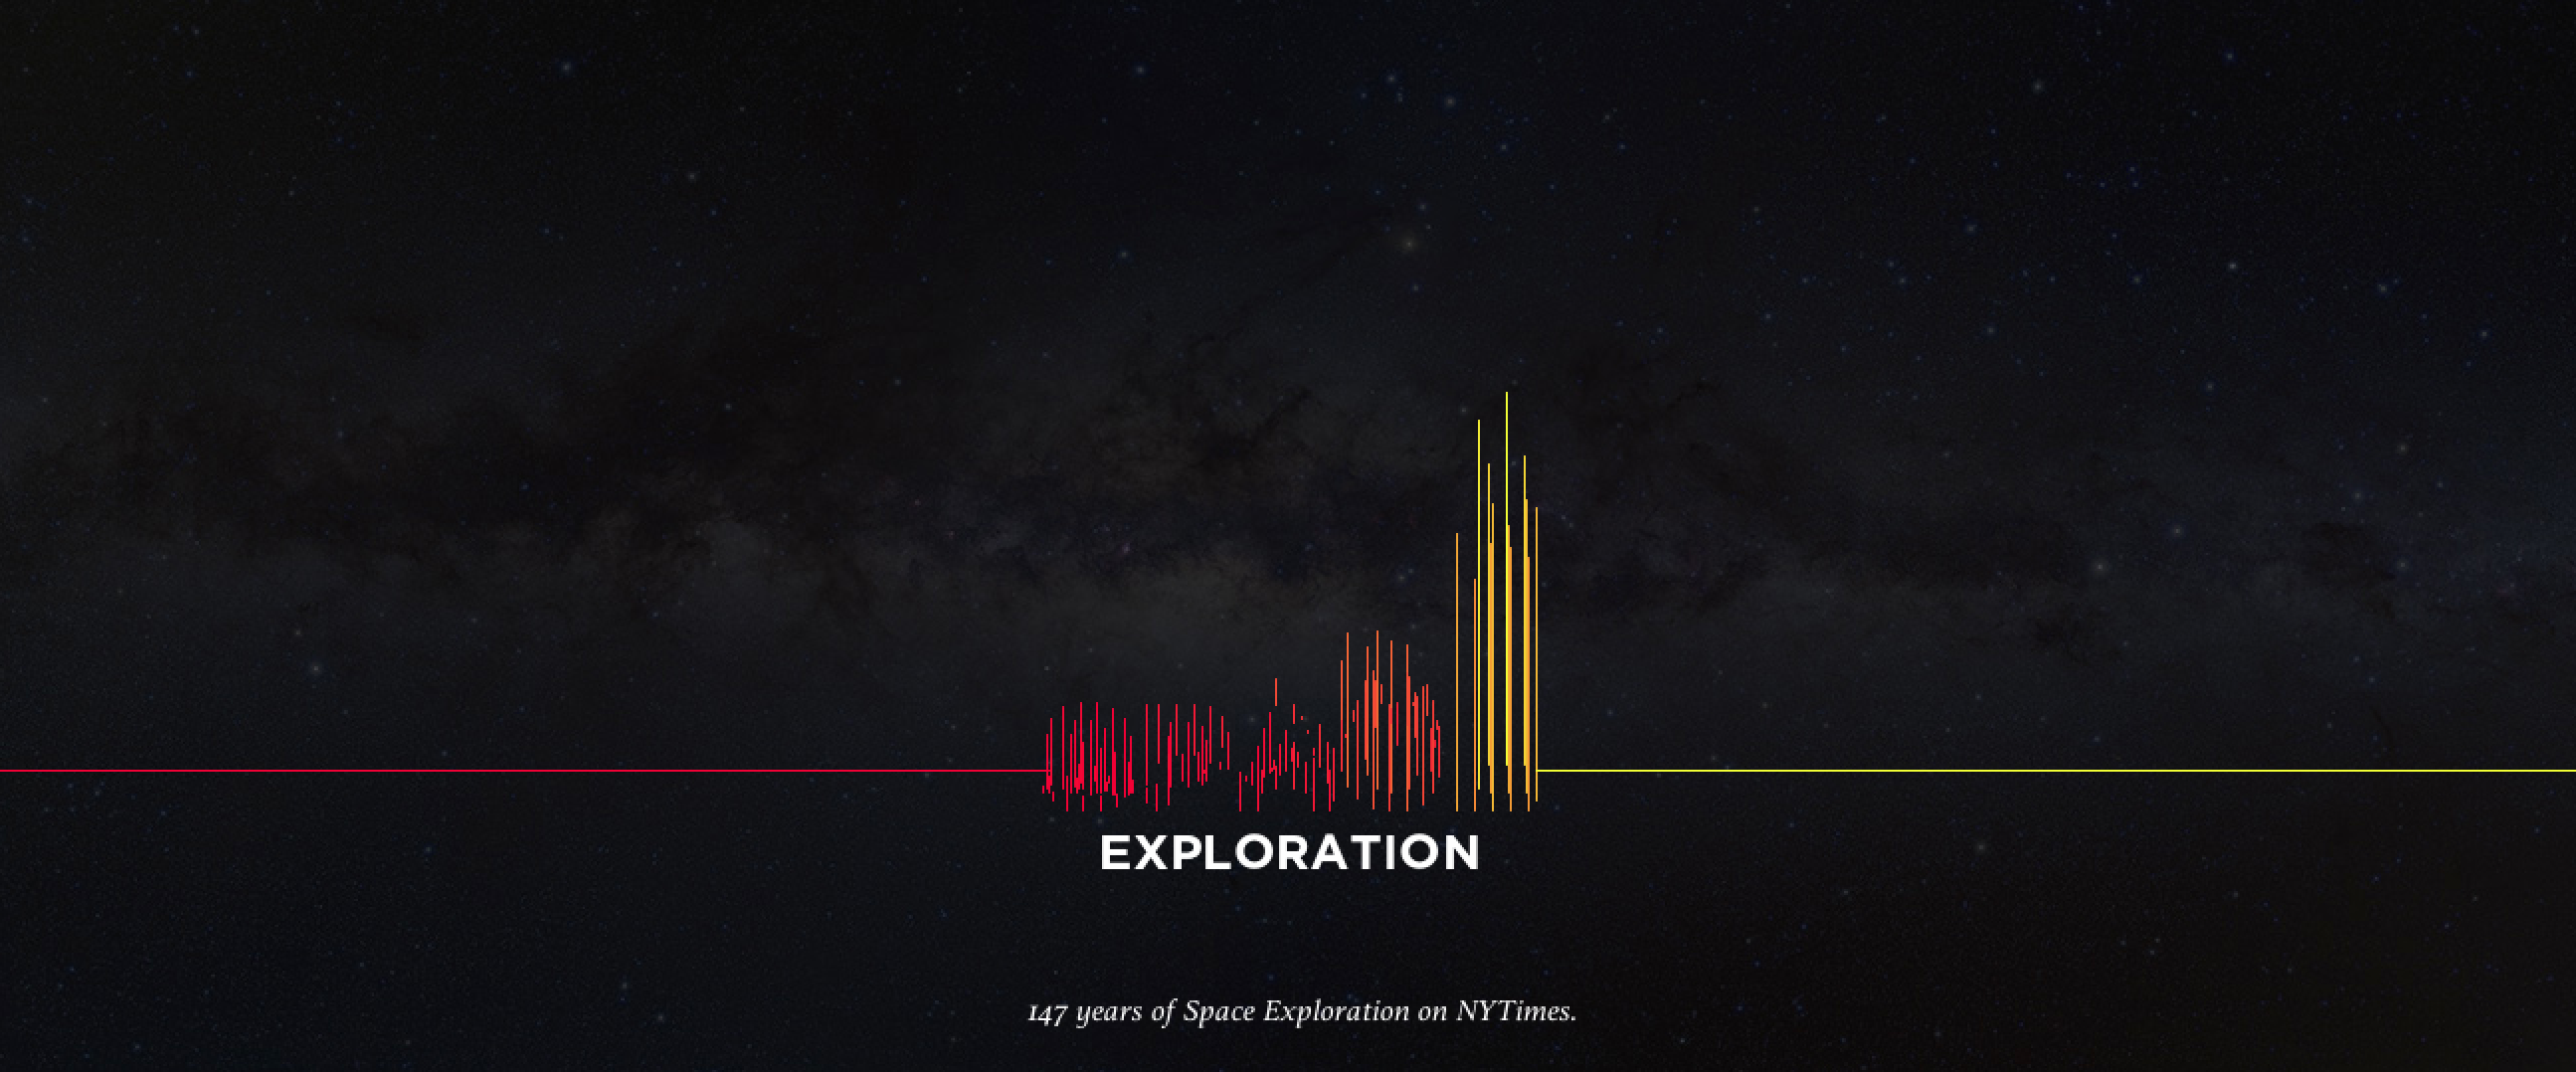 Abstract 'Space Exploration' visualization created with ...